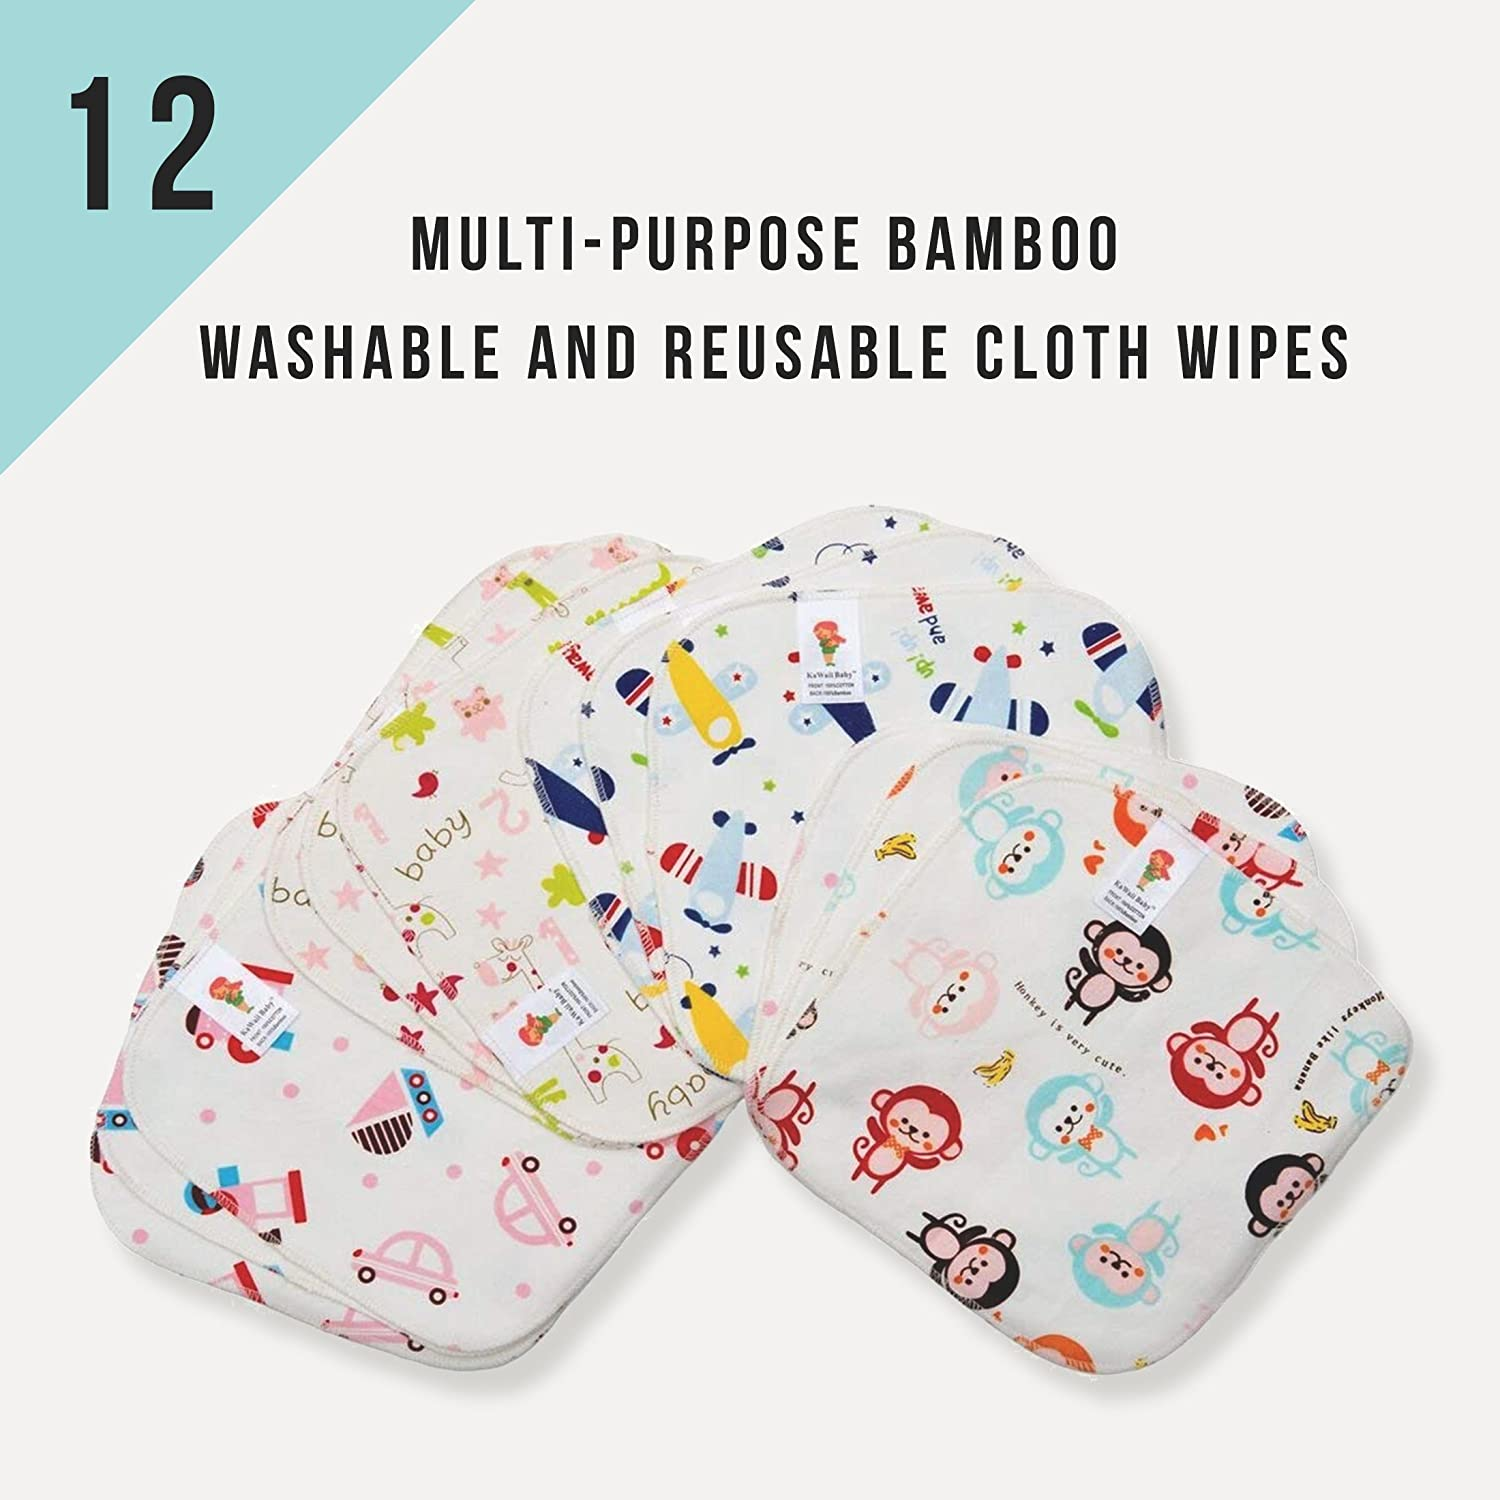 PROMOTION! Multi-purpose Bamboo Washable and Reusable Cloth Wipes (12/pack)-Nature KaWaii Baby